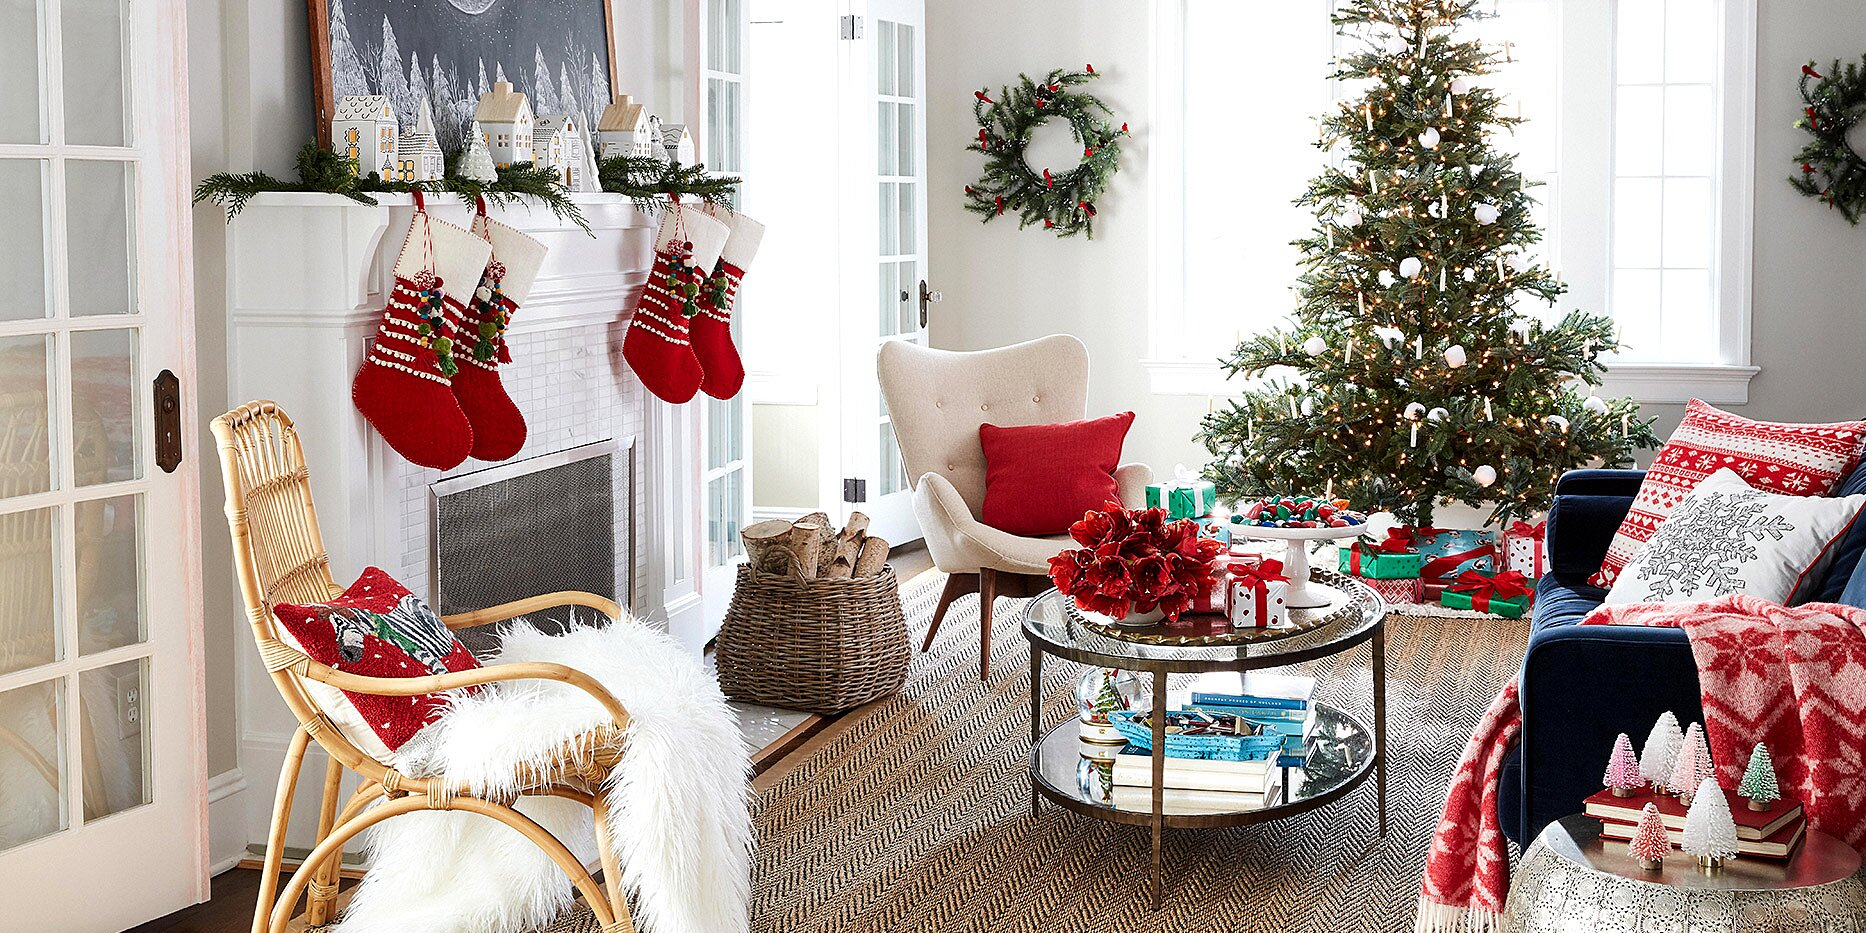 The Most Popular Time to Put Up Holiday Decorations, According to a Recent Survey